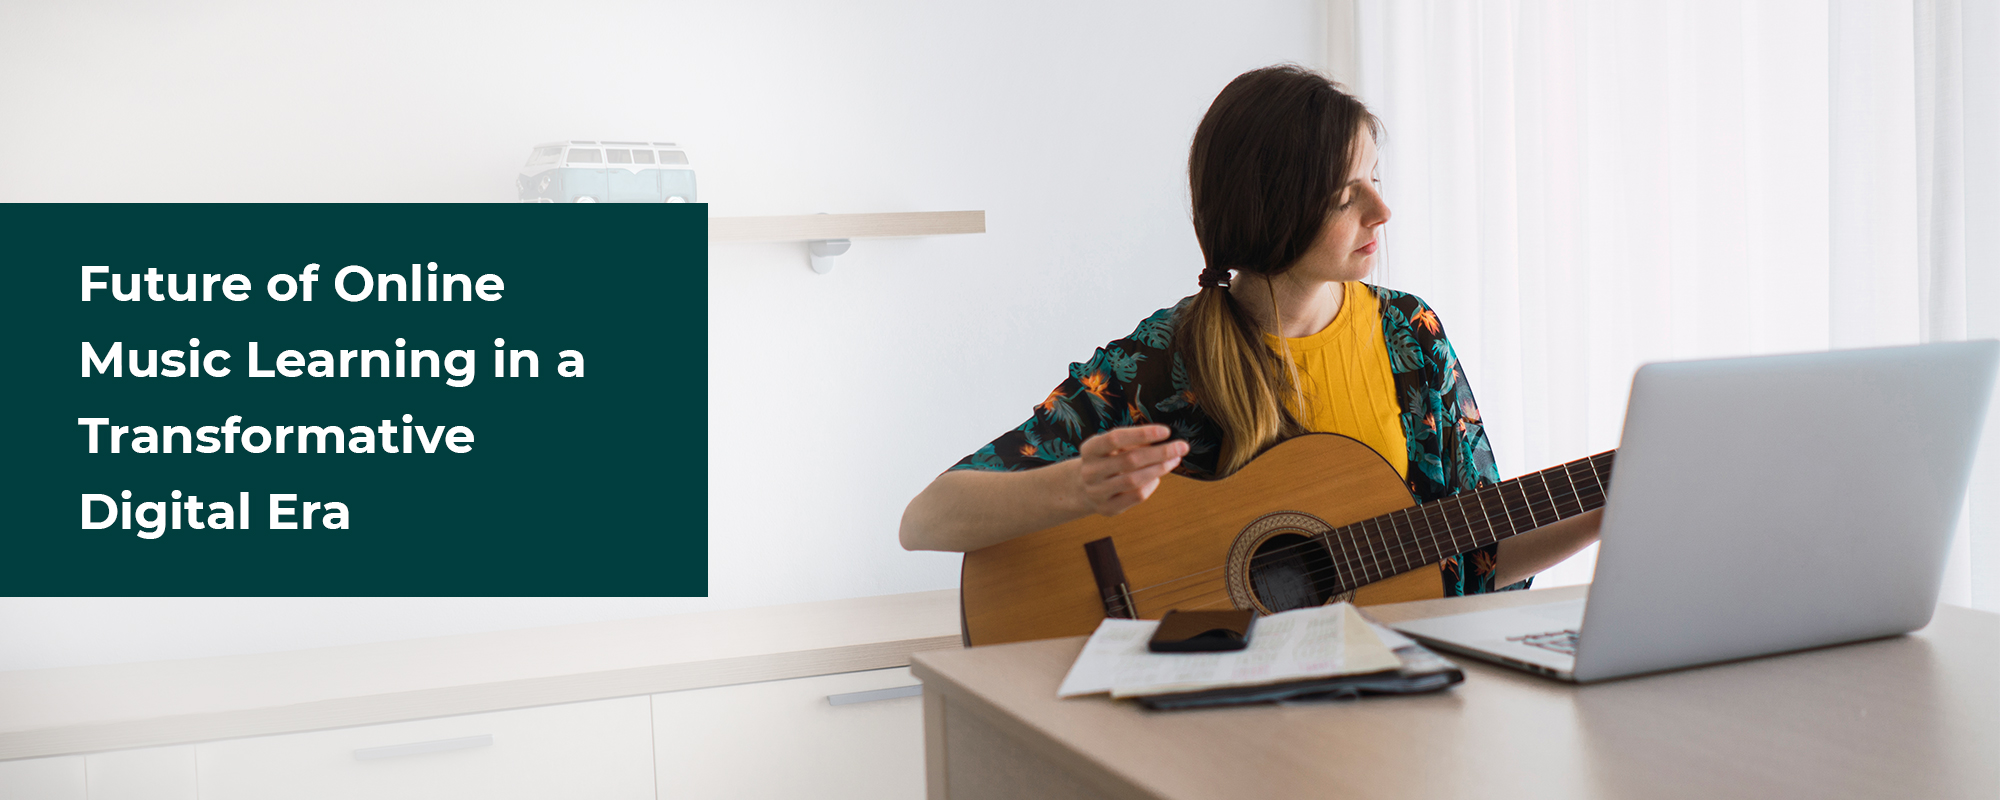 How To Build an Online Music Learning Platform: Business Model, Challenges & Key Features